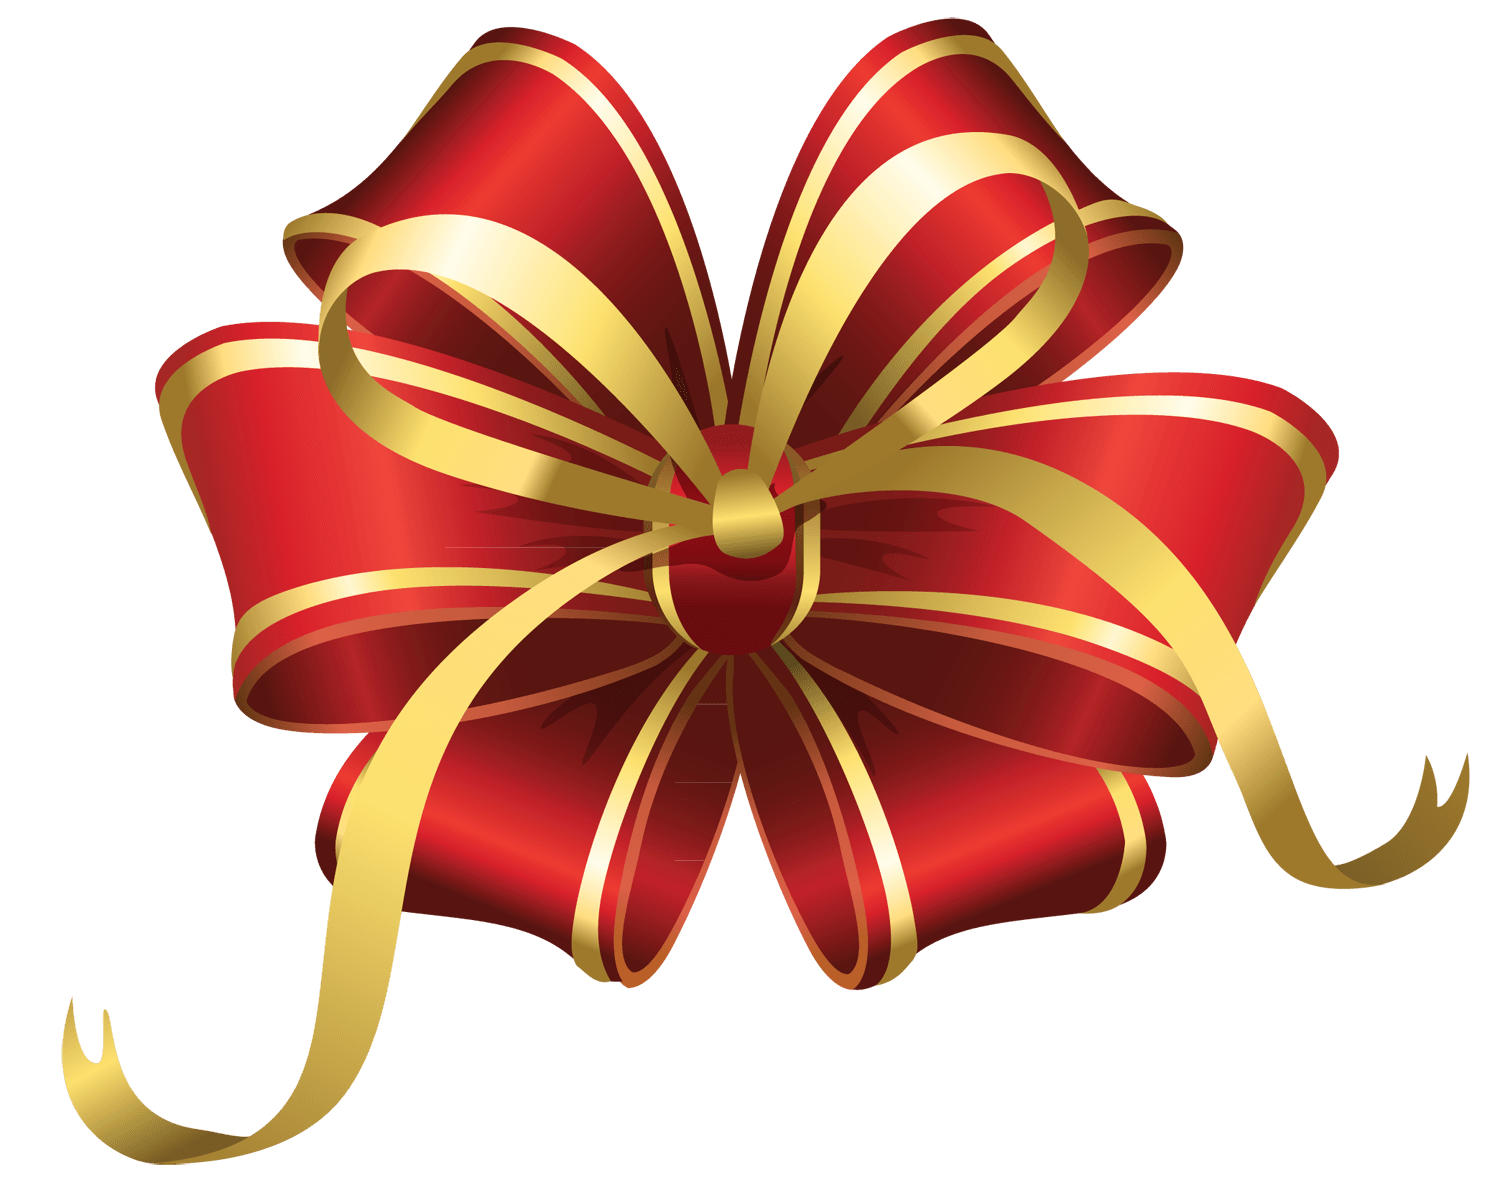 Christmas Star Ribbon Transparent Png Stickpng